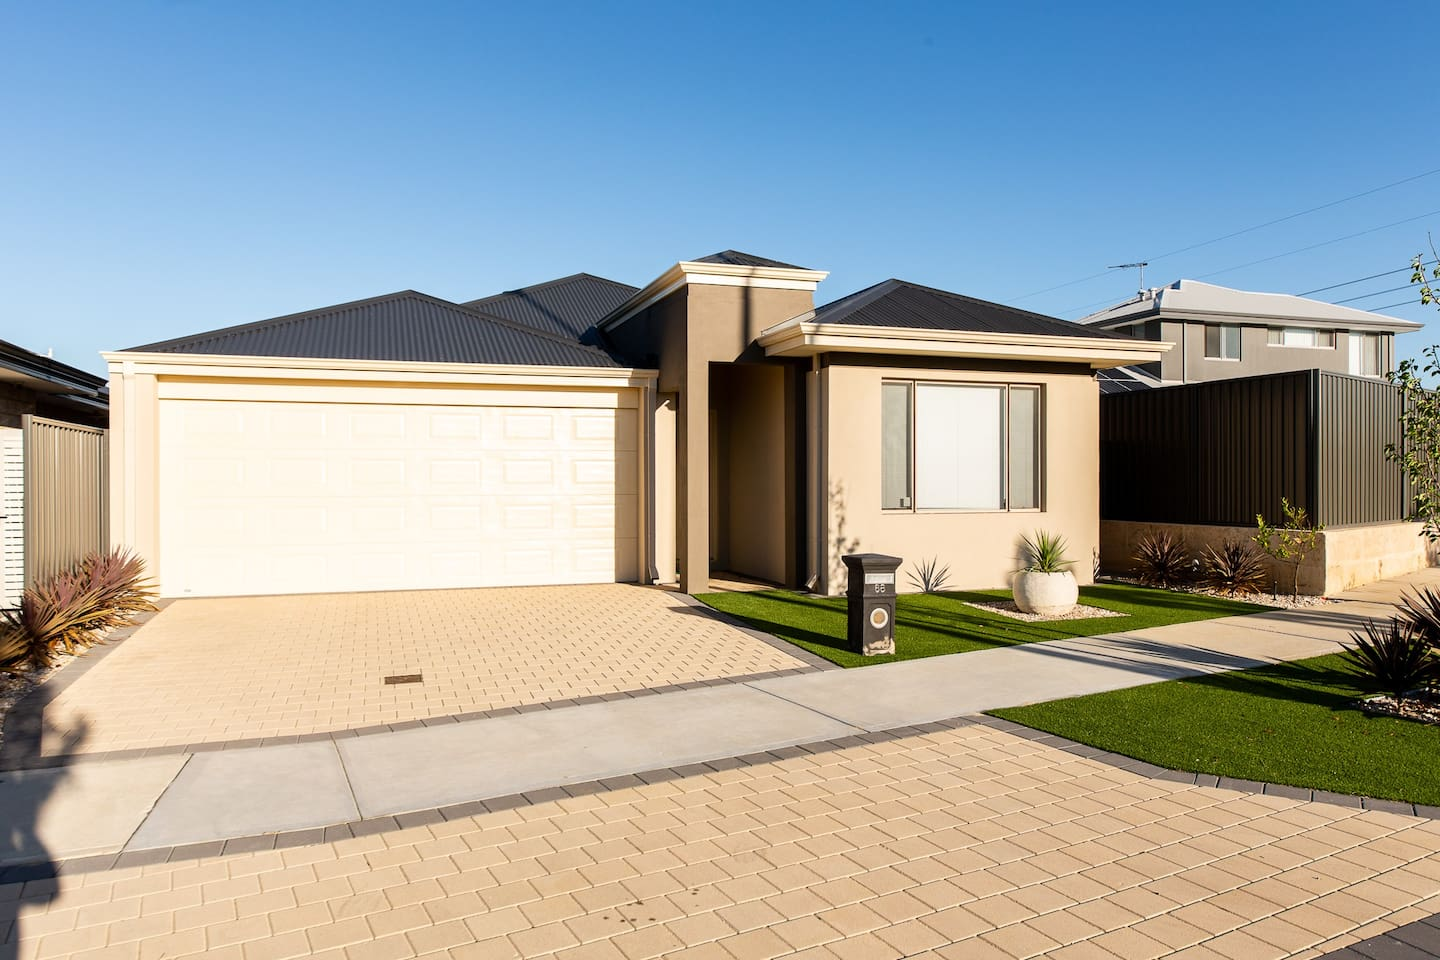 Front of the house: Two car parking spaces on the driveway